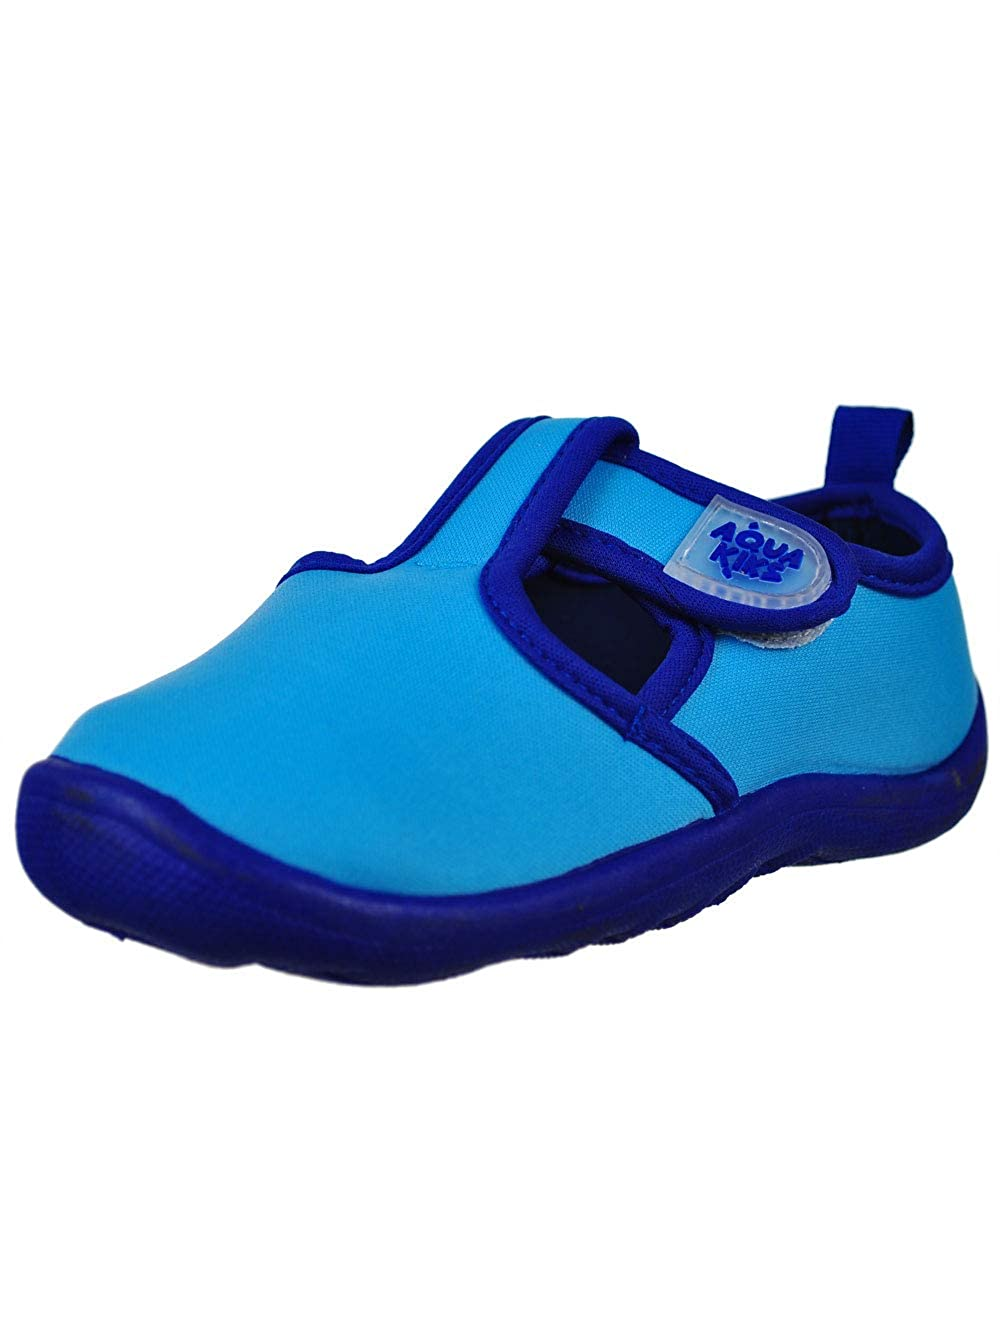 8 Toddler Aqua Kiks Boys Water Shoes Blue